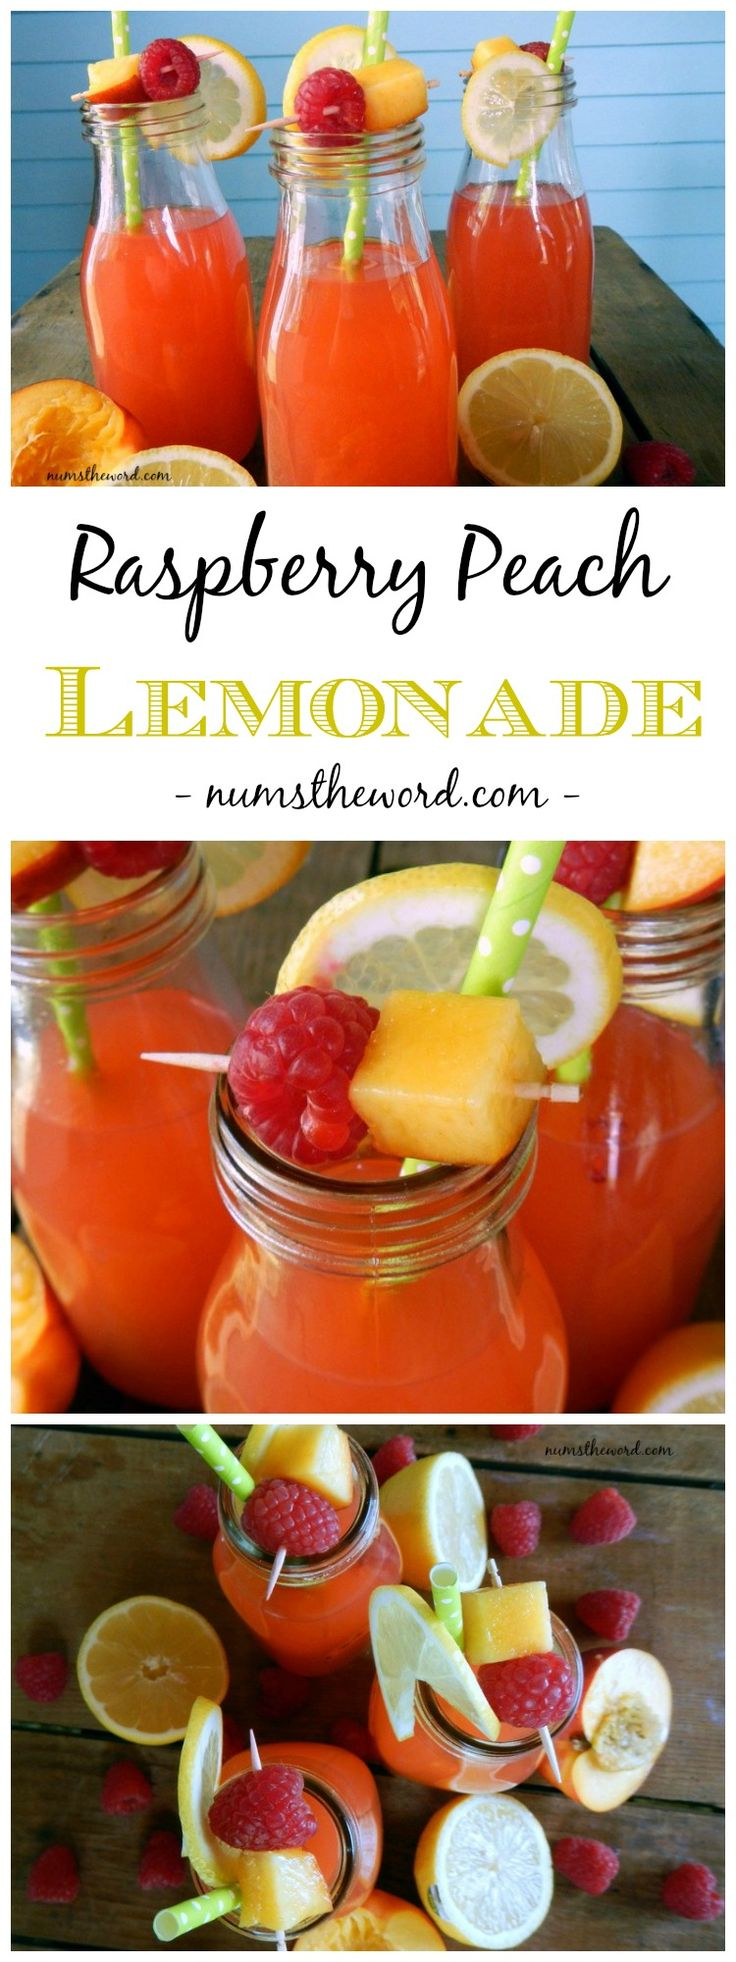 A refreshingly sweet & tangy lemonade that is easy to make and always a hit! This raspberry peach lemonade is homemade with real fruit juices! Feel free to substitute nectarines for peaches but don't skip out on the raspberries! #raspberry #peach #lemonade